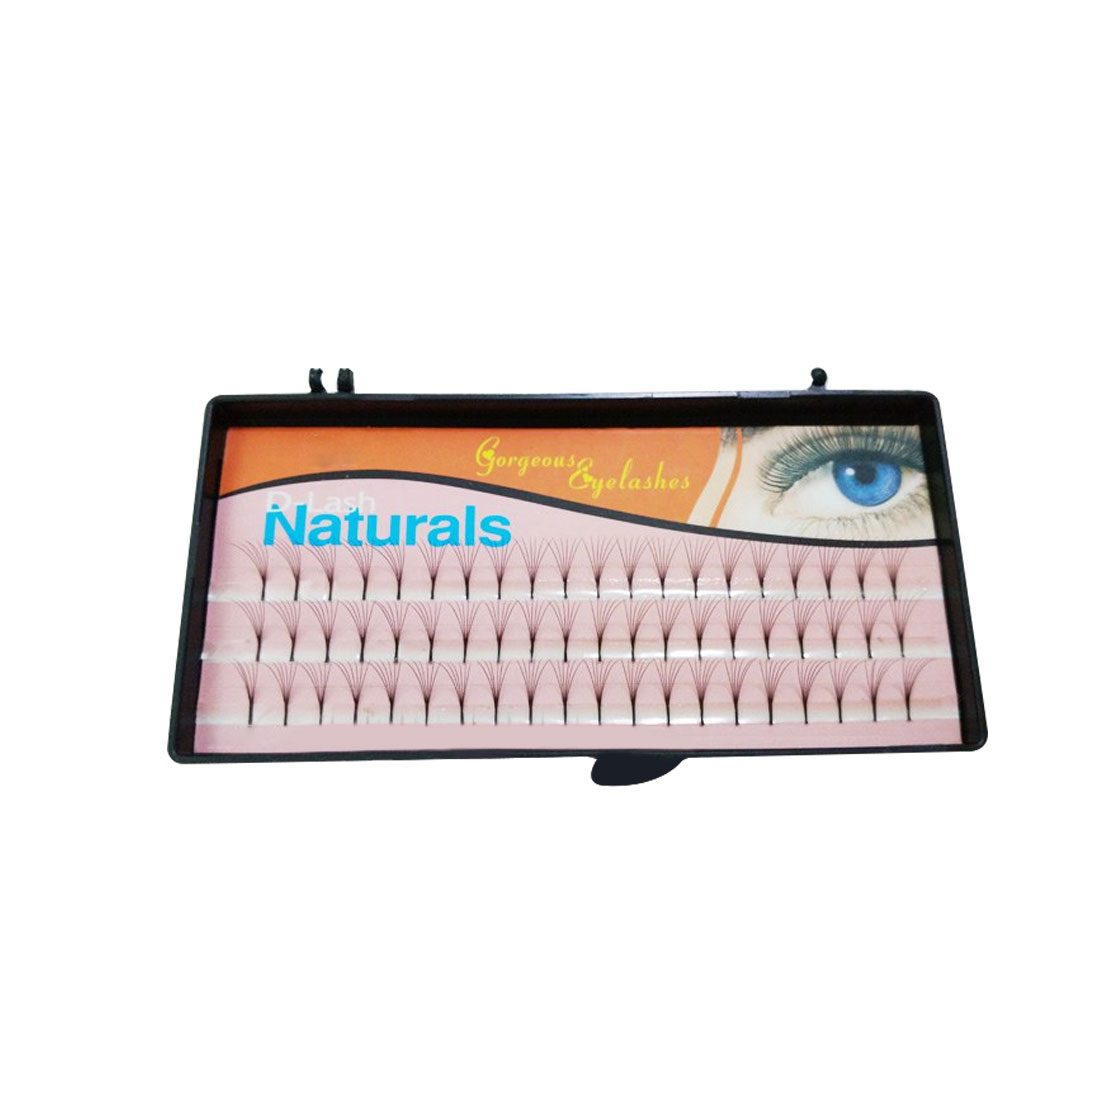 NEW Sale 60 Natural Long Black Individual False Eyelashes Eye Lash Extension Kit Soft 12mm 10mm 8mm Selection ...